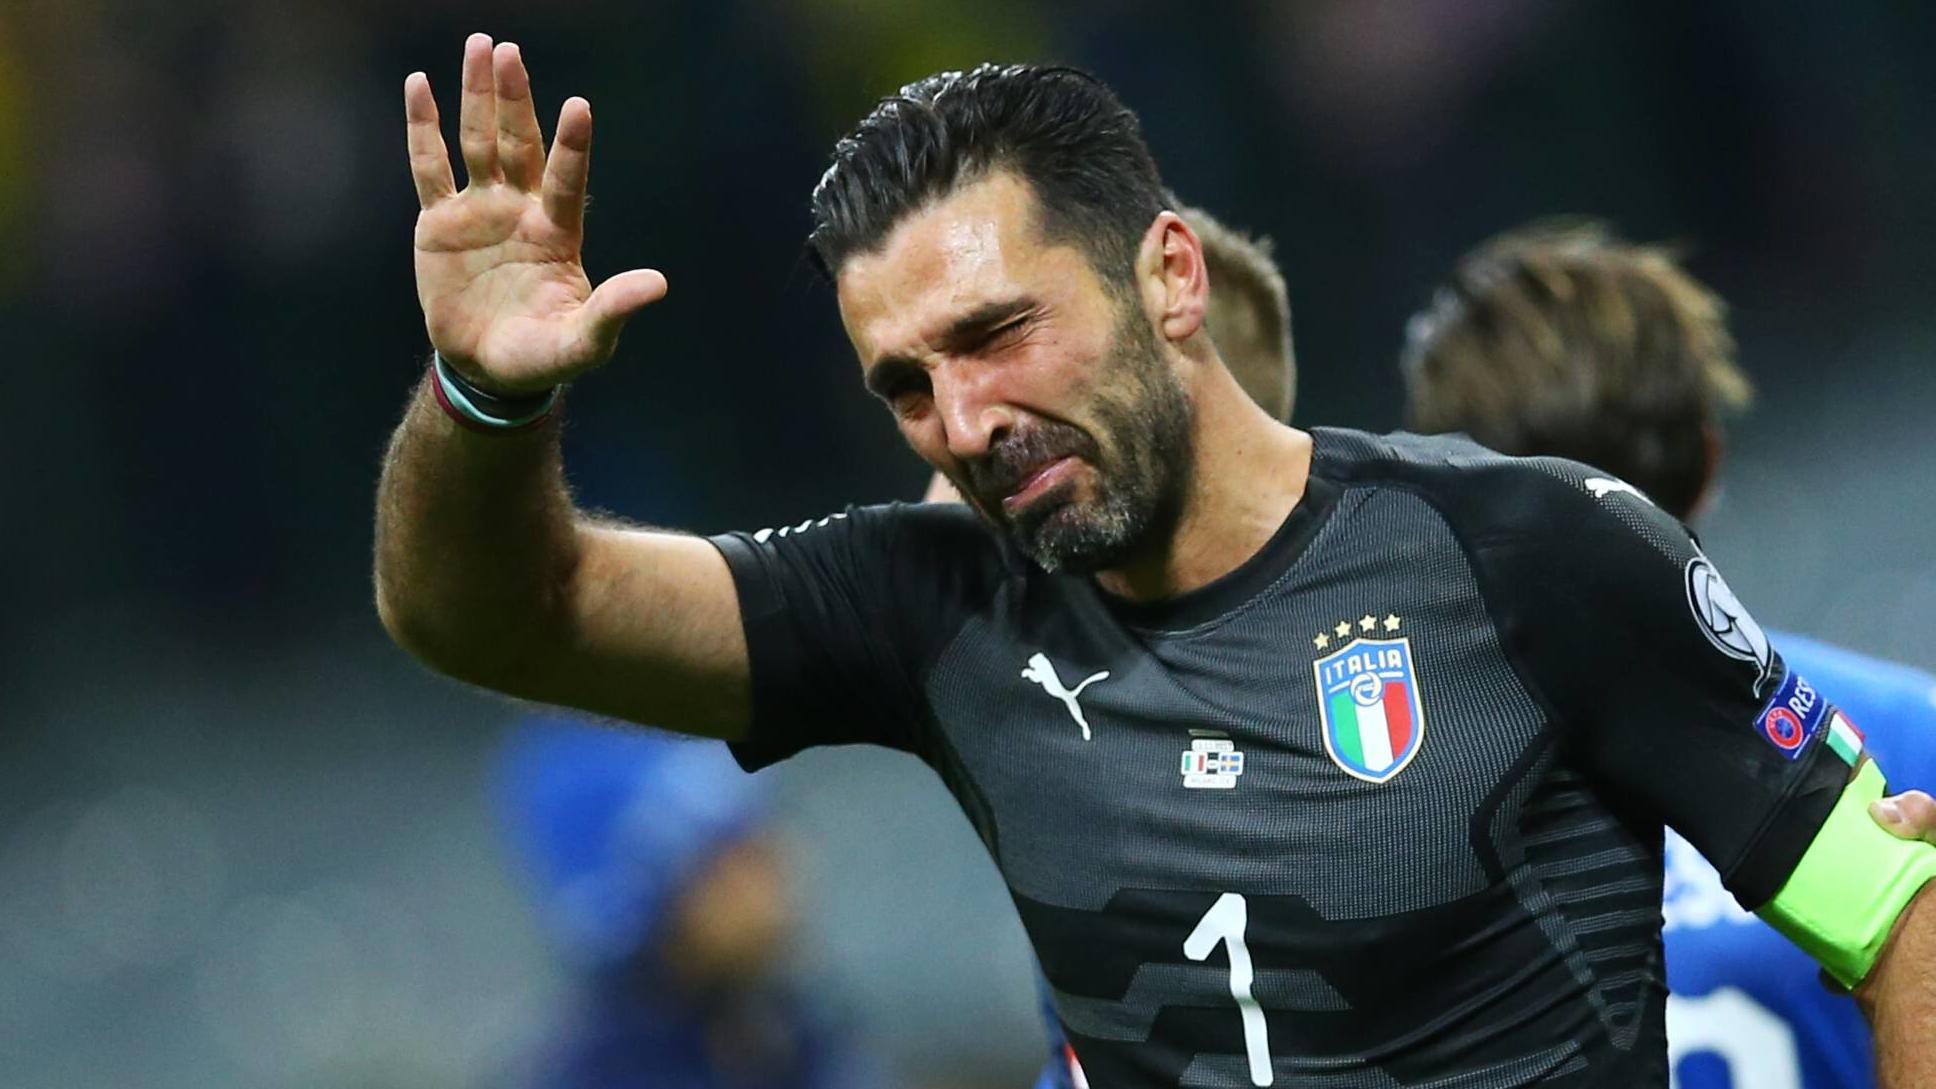 Fußball, WM Playoffs, Italien - Schweden  November 13, 2017 - Milan, Italy - FIFA World Cup WM Weltmeisterschaft Fussball Qualifiers play-off Switzerland v Northern Ireland.Gianluigi Buffon of Italy crying at the end of at San Siro Stadium in Milan,